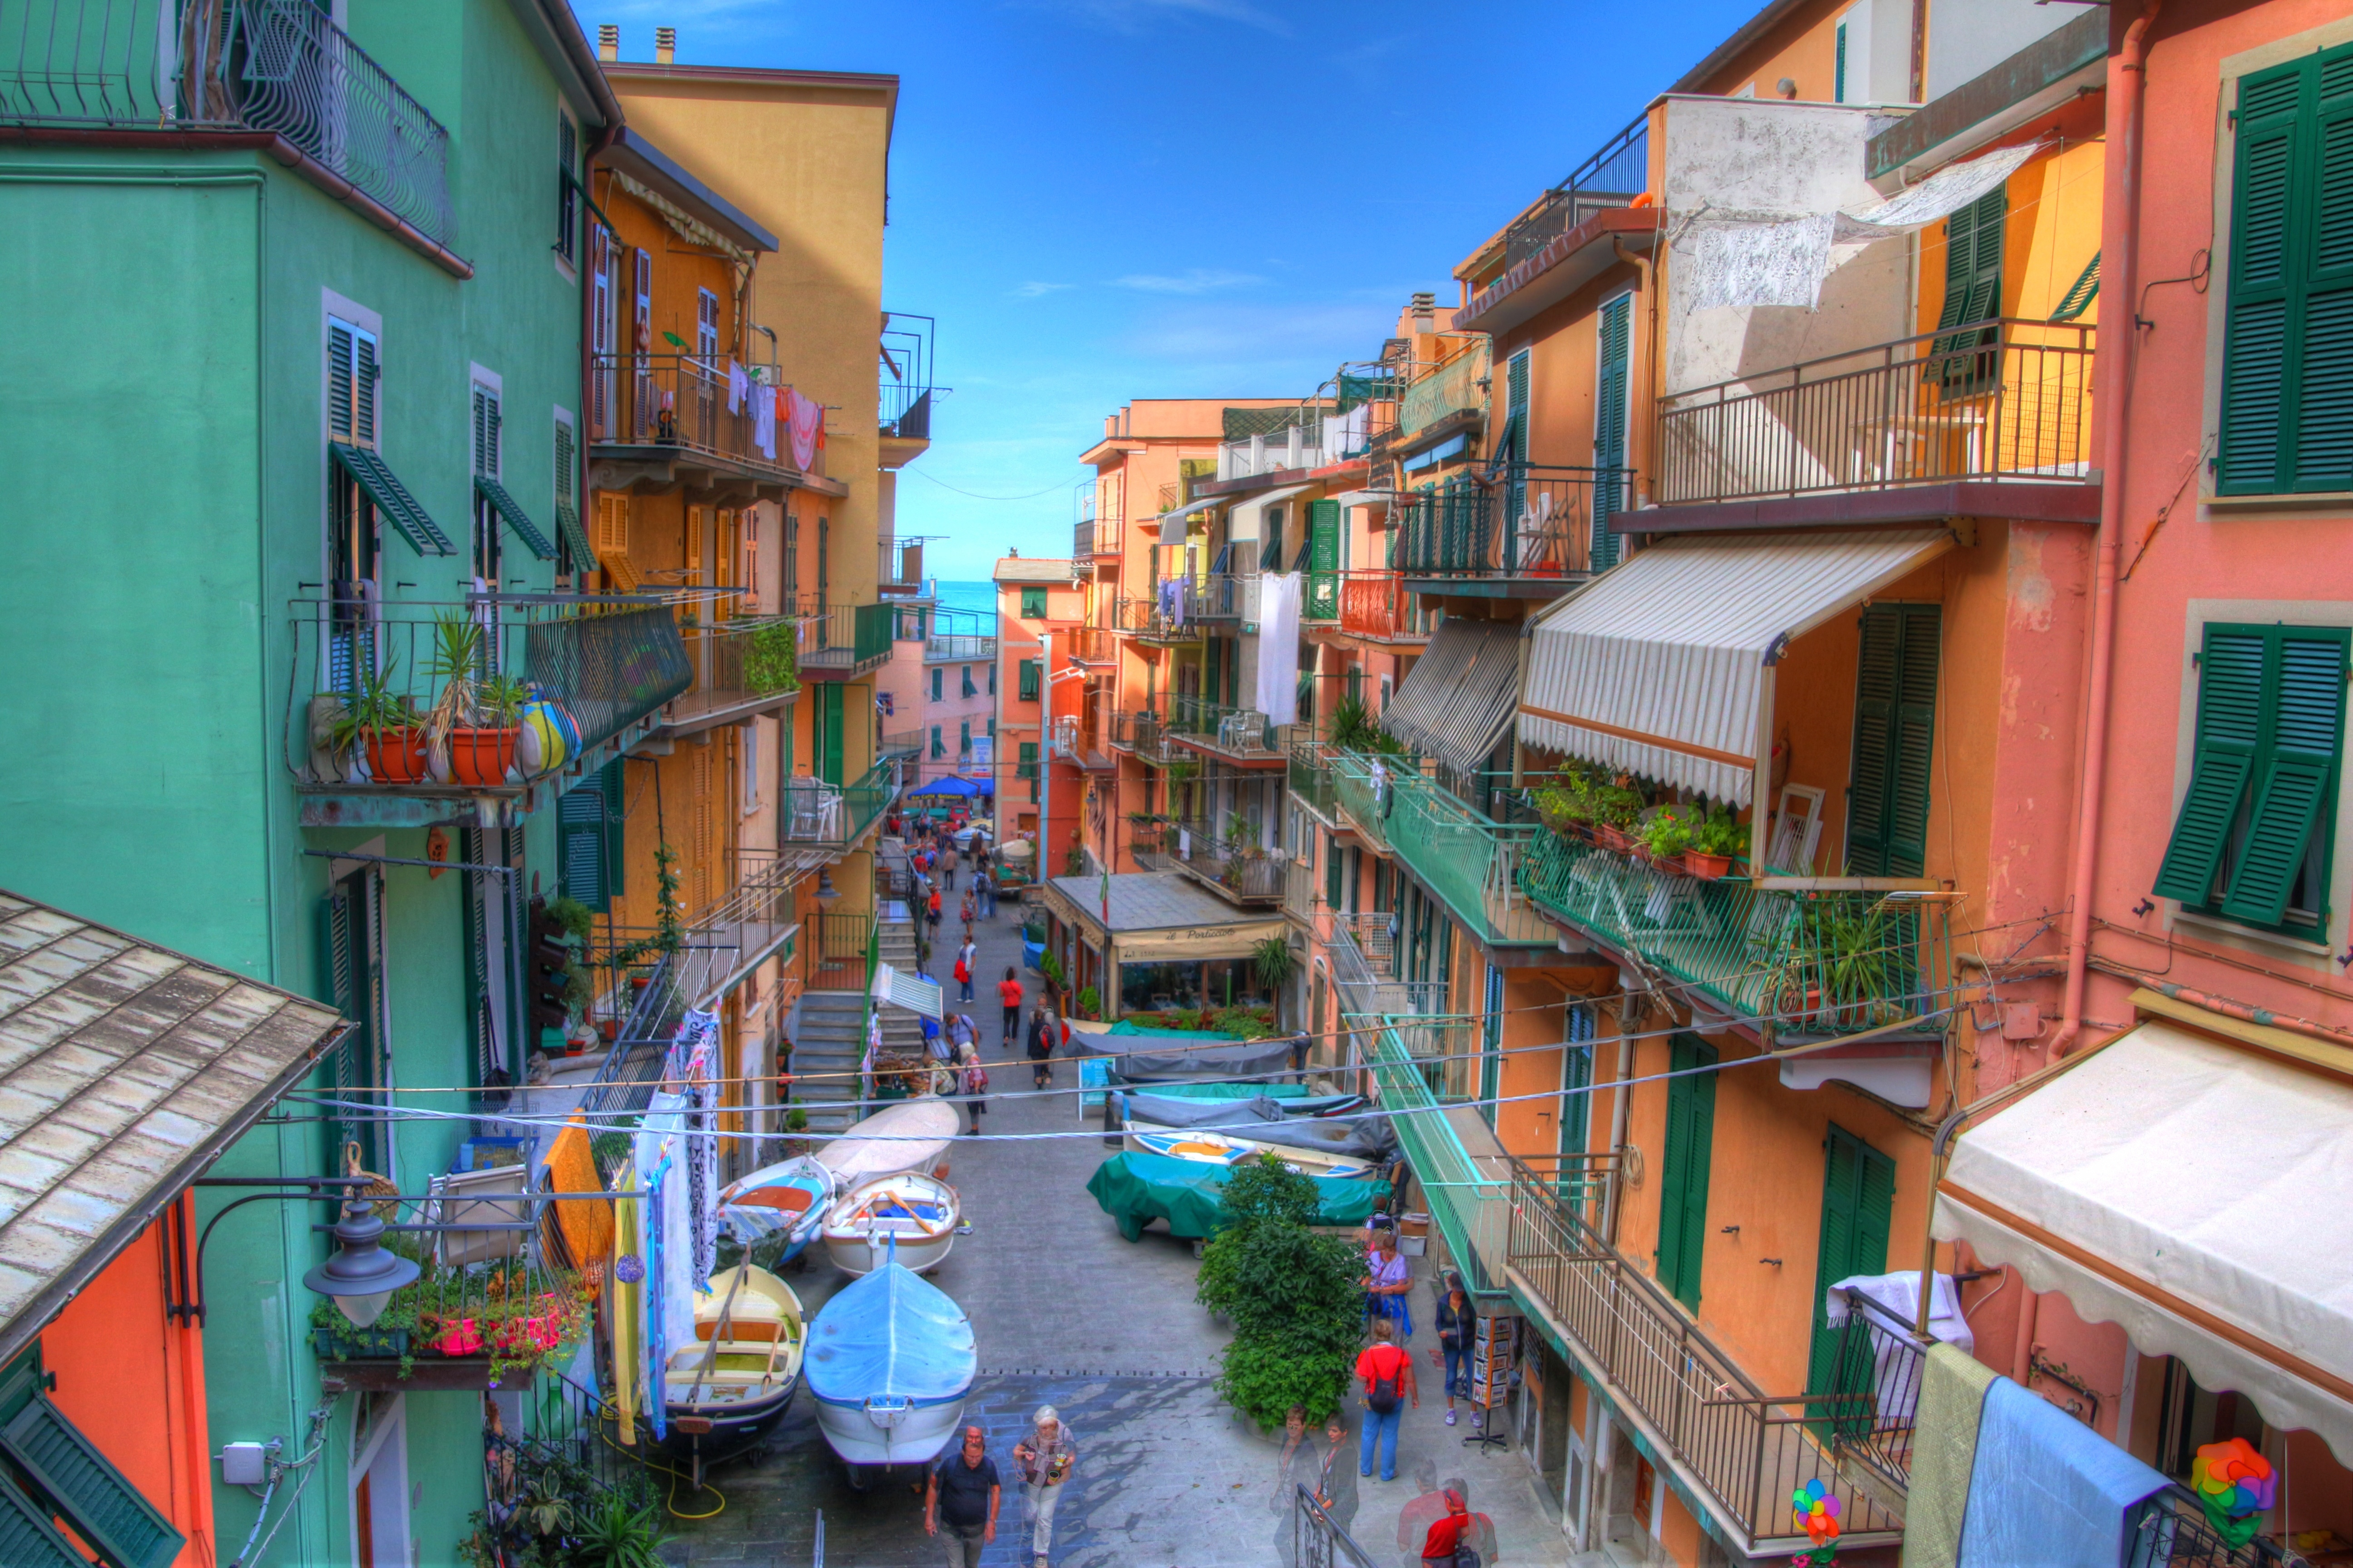 cinque terre author lucke charlie this image has